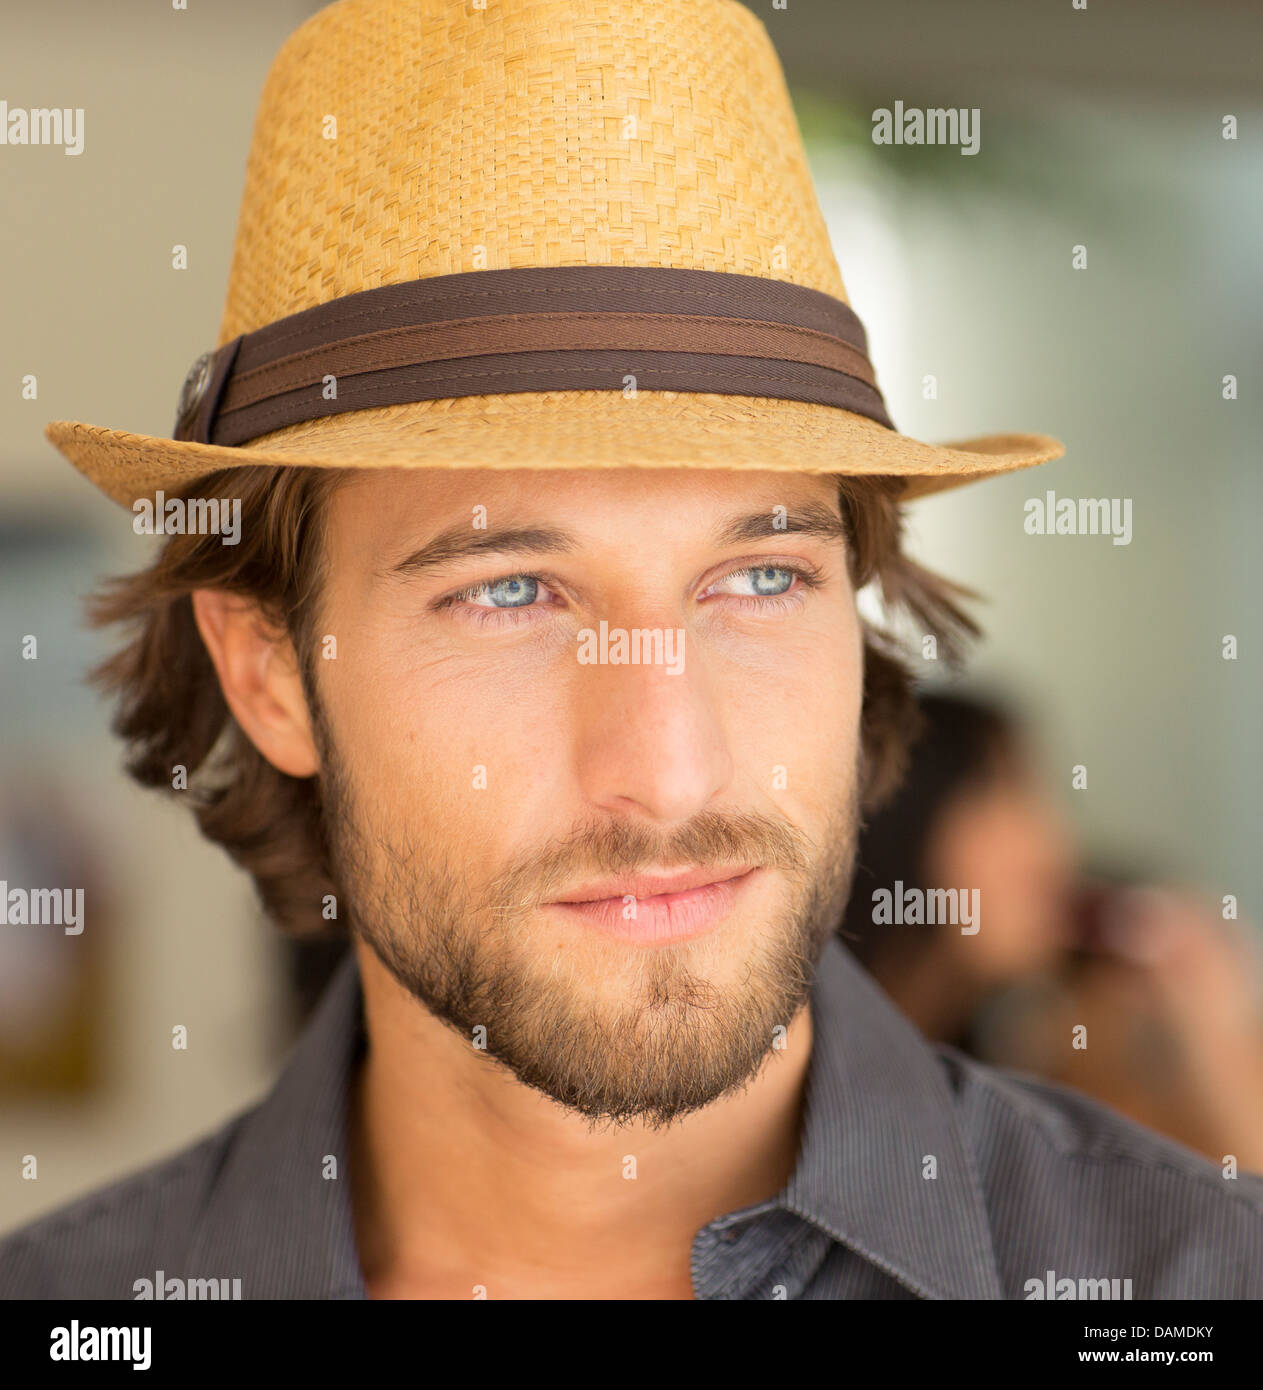 Smiling man wearing straw hat Photo Stock